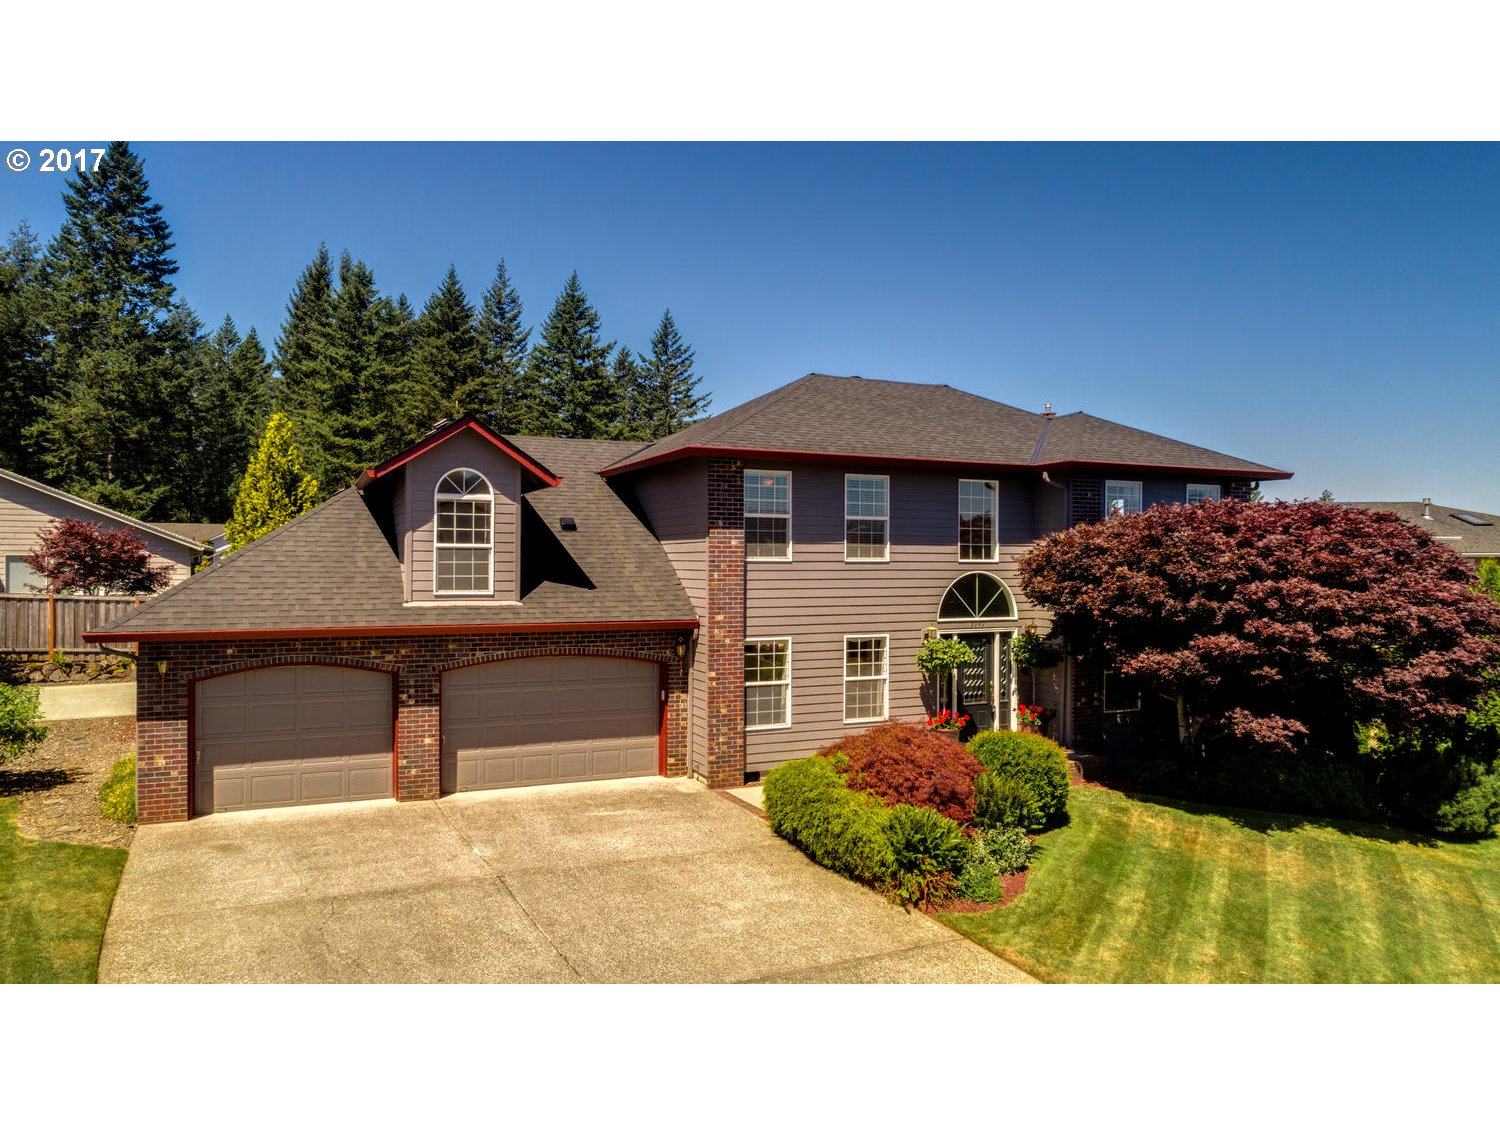 3949 NW CURRAWONG CT, Camas, WA 98607